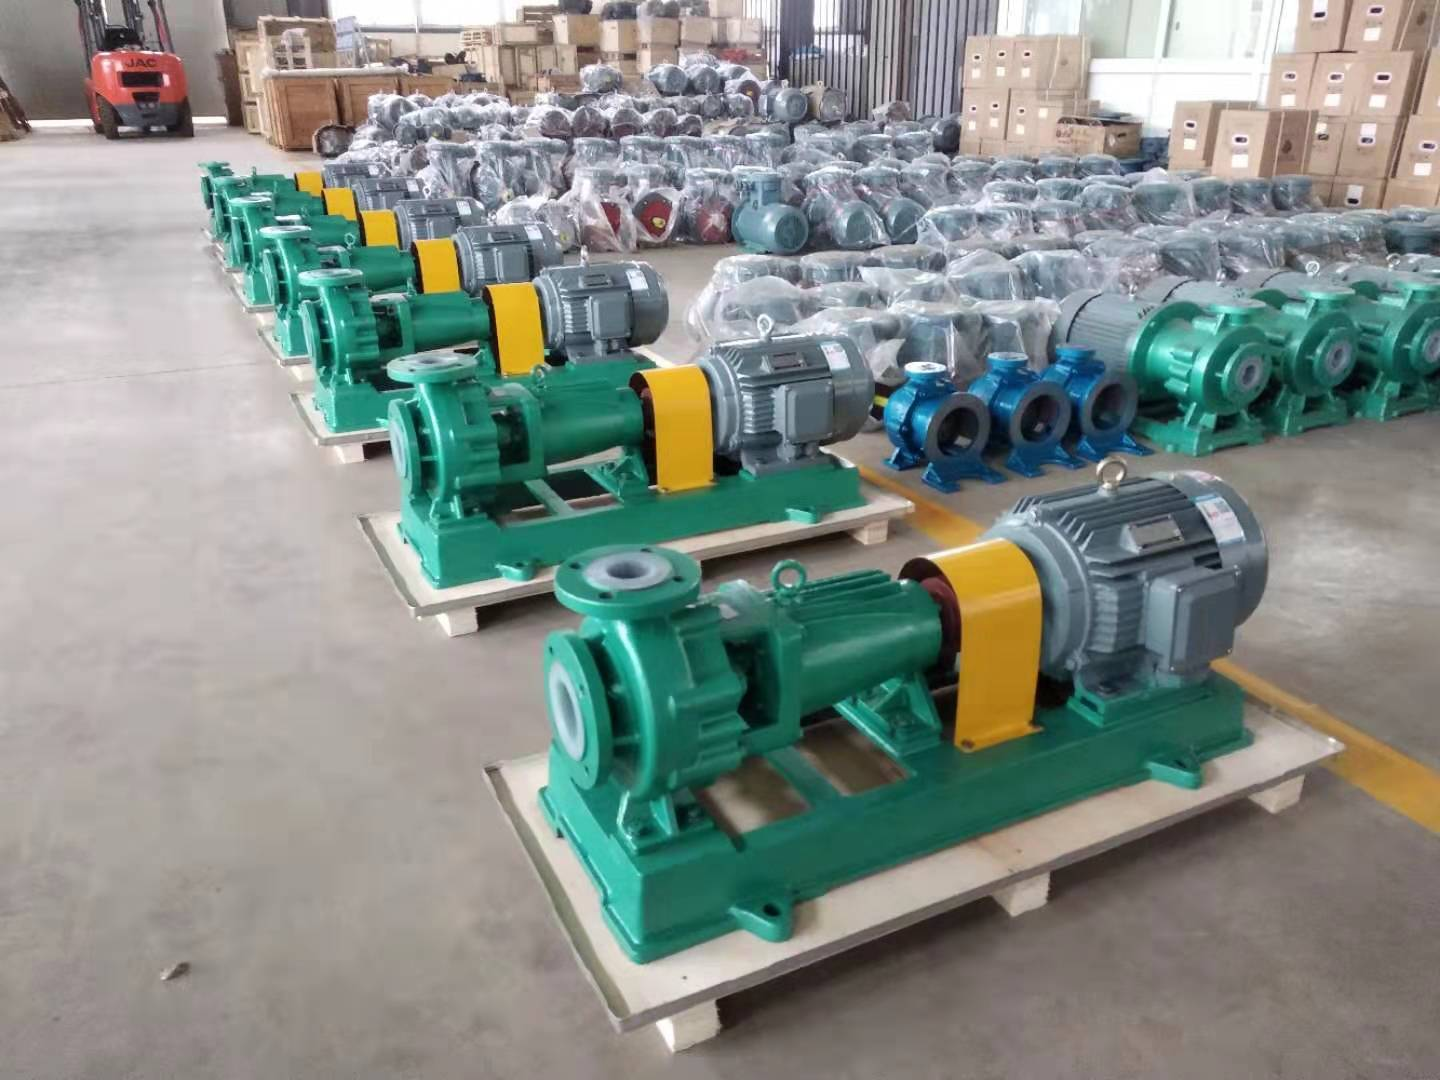 PTFE lined centrifugal pumps